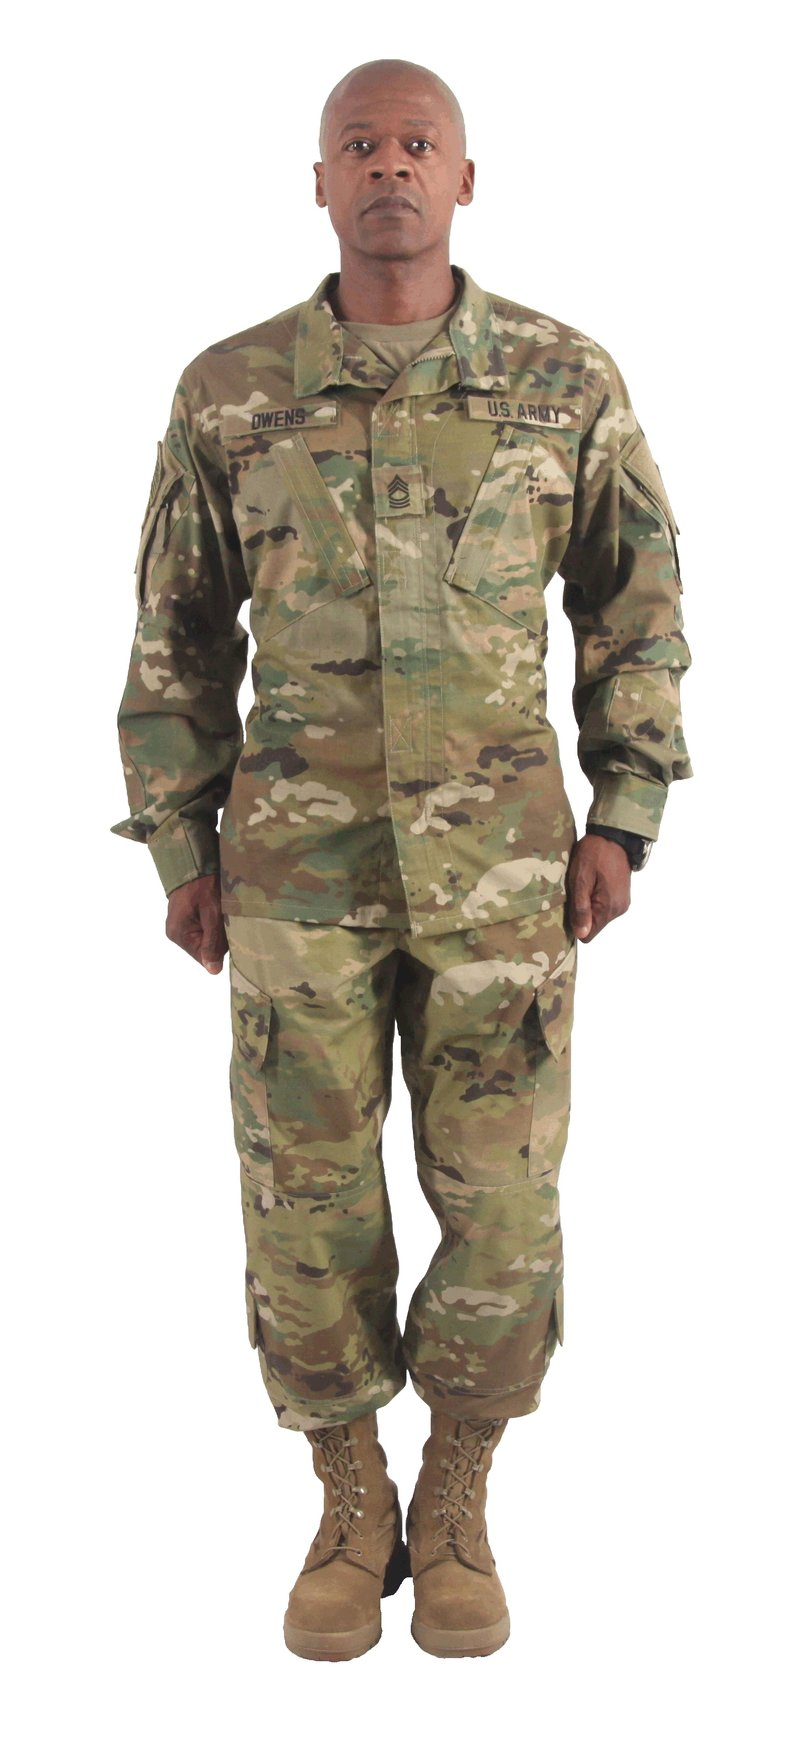 How to rotc wear uniform acu